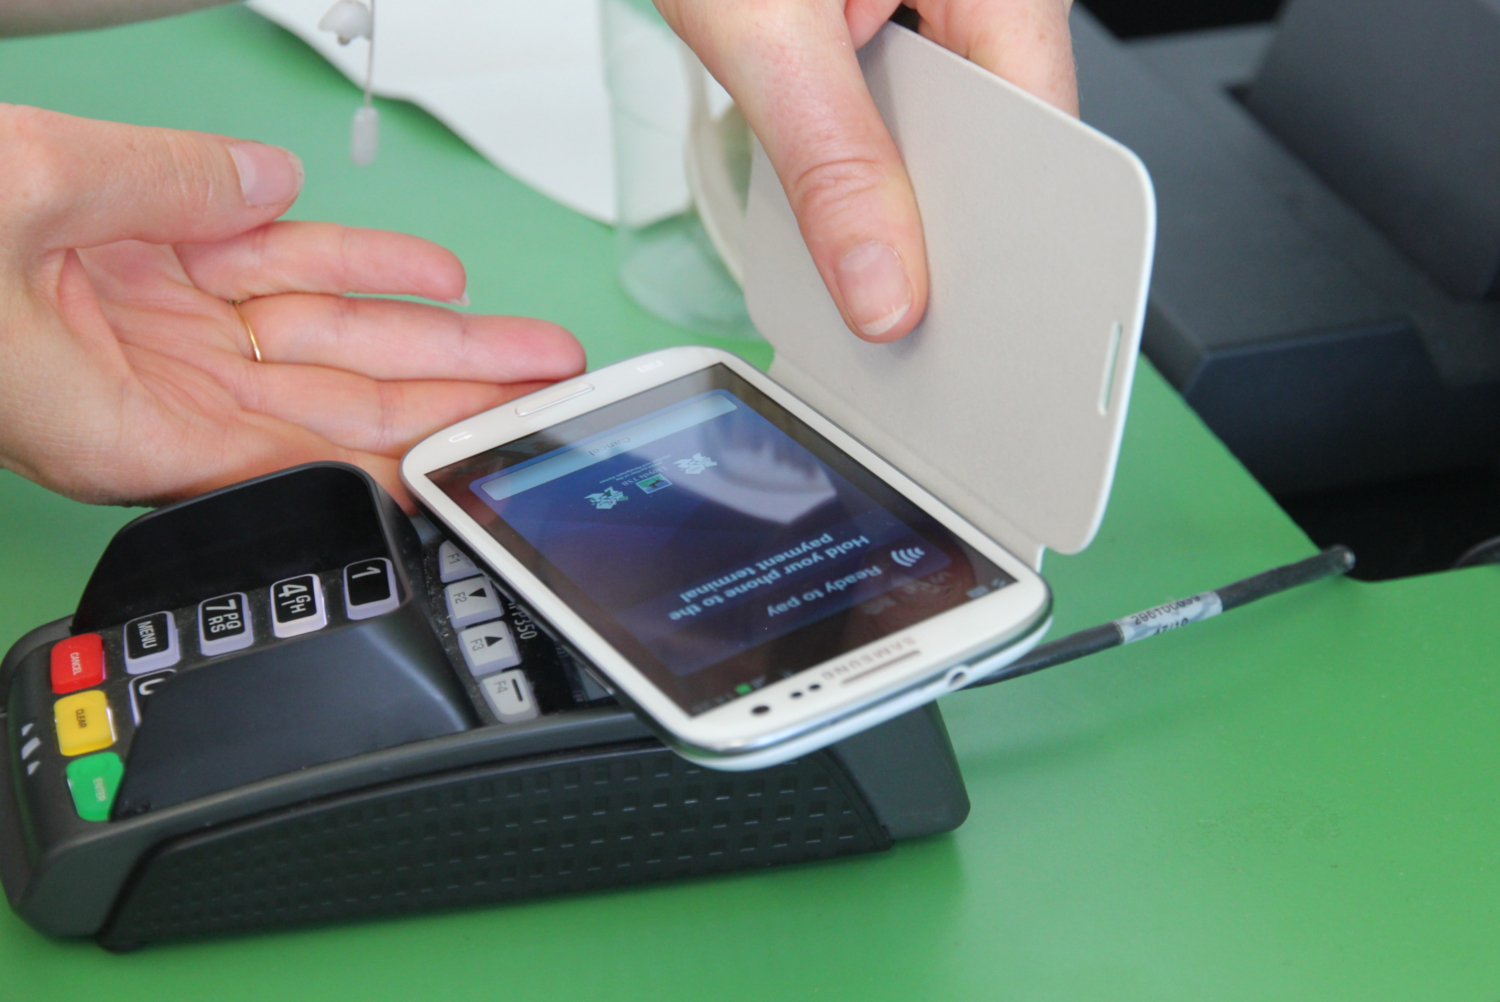 Mobile payment (credits: Pierre Metivier / Flickr Creative Commons Attribution-NonCommercial 2.0 Generic (CC BY-NC 2.0))